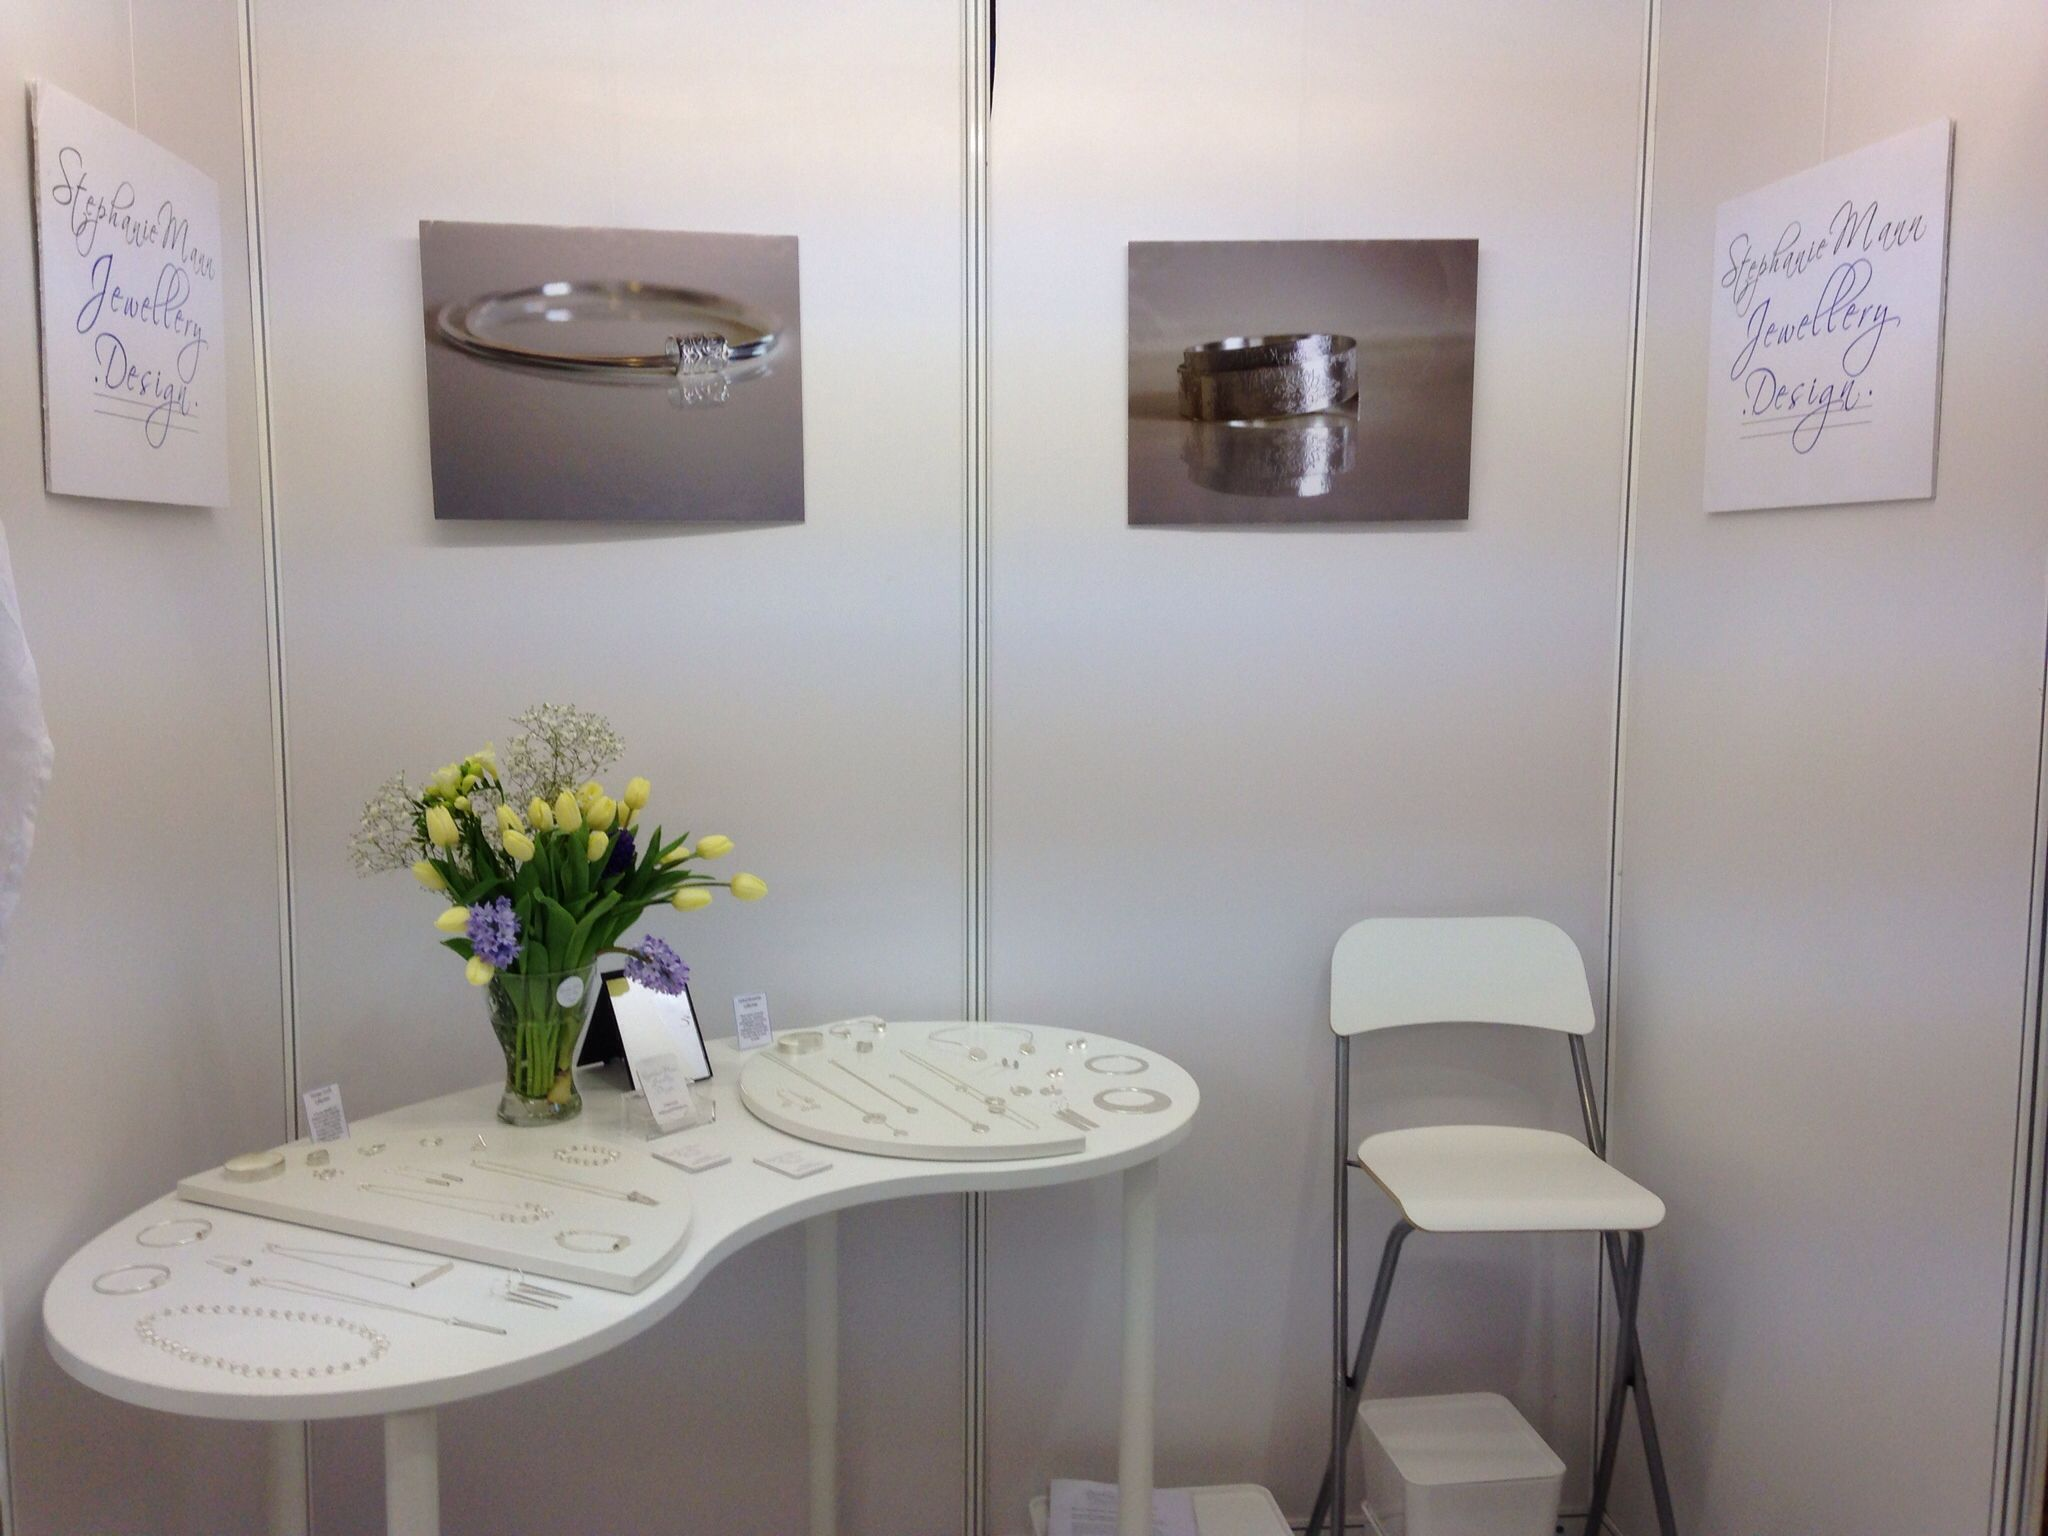 Stephanie mann jewellery design stand at BCTF in Harrogate